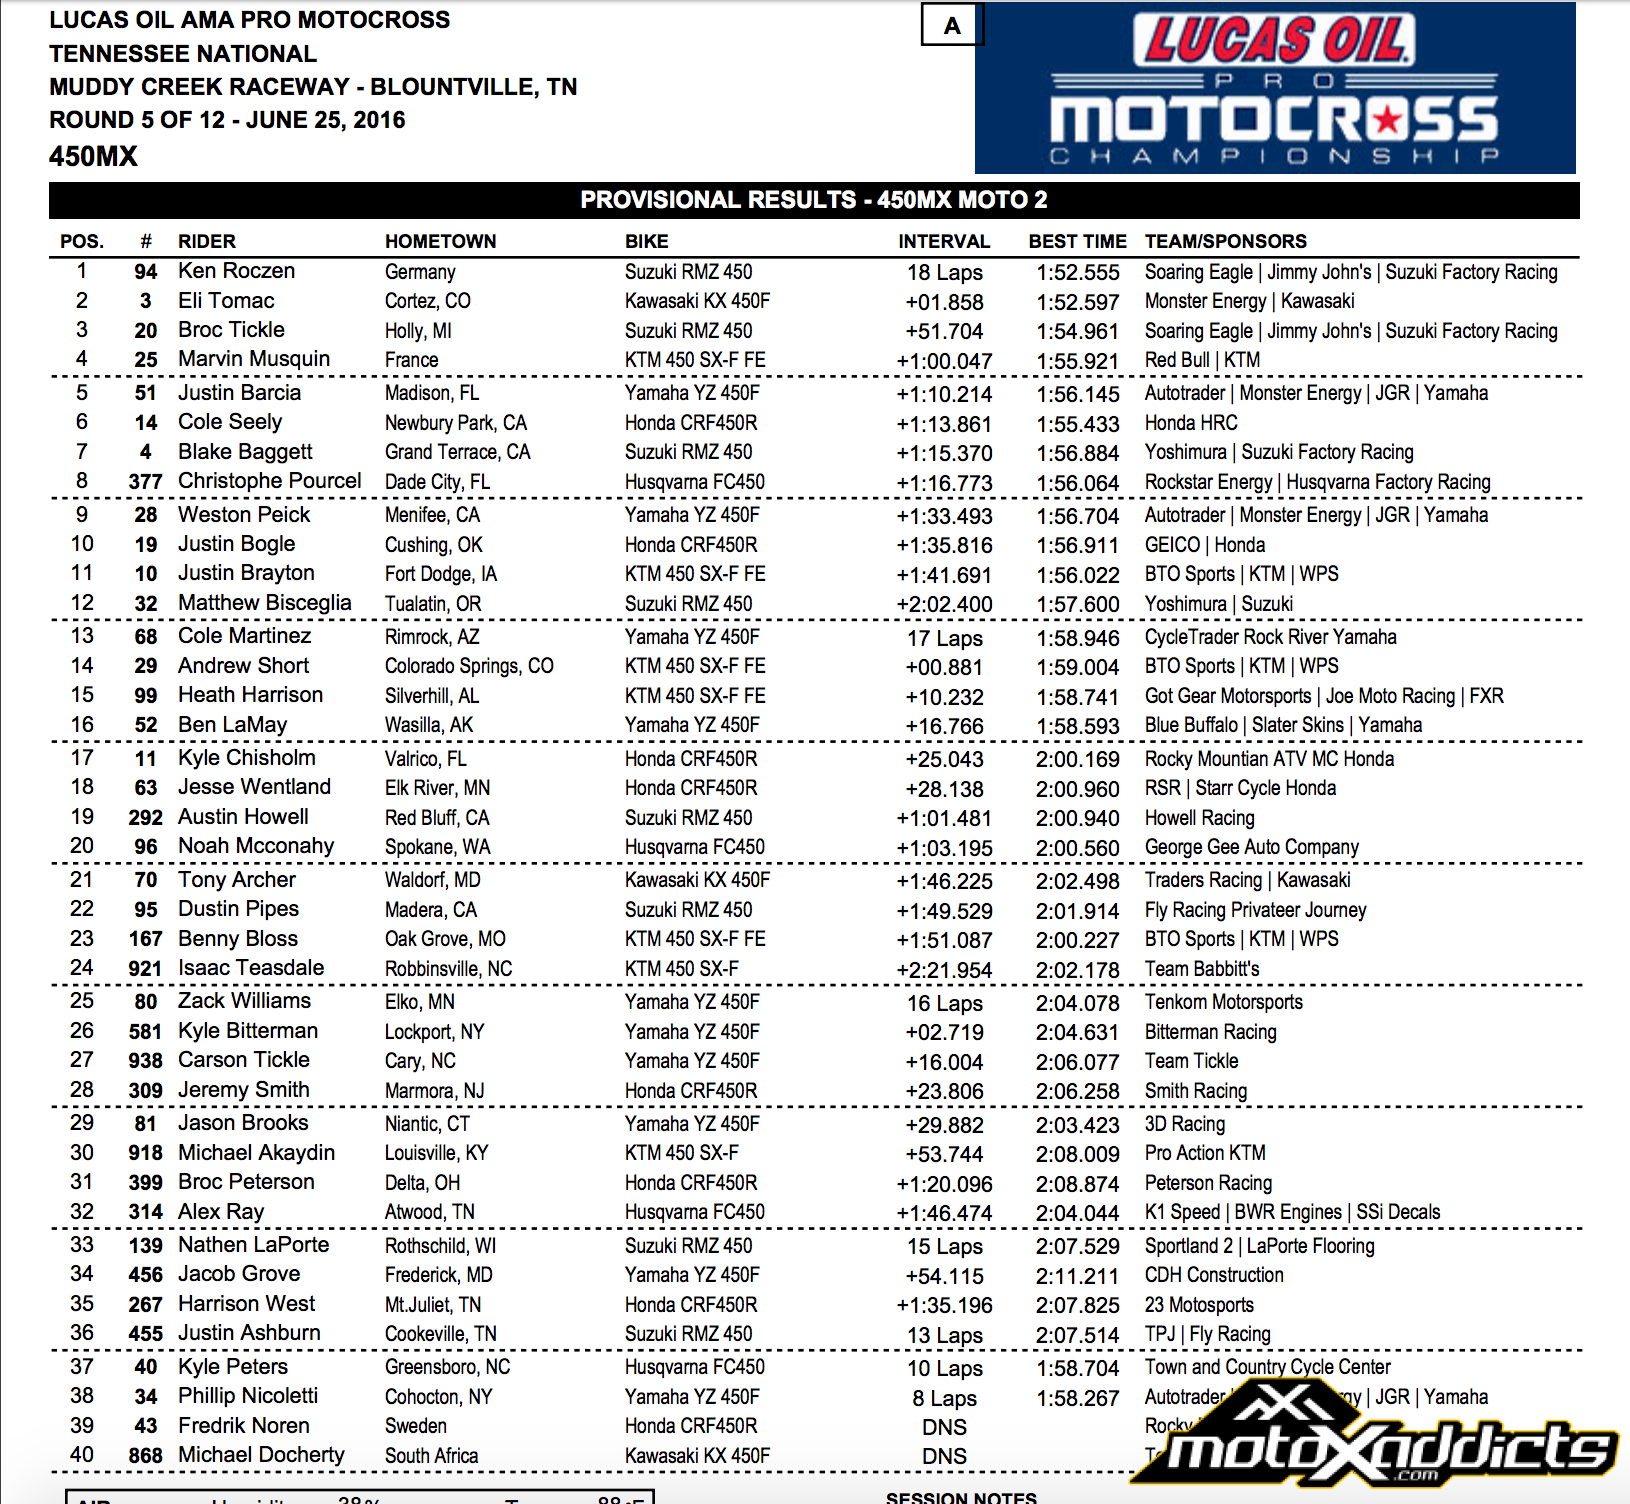 2016 Red Bull Tennessee National - 450MX Moto 2 Results - Click to Enlarge